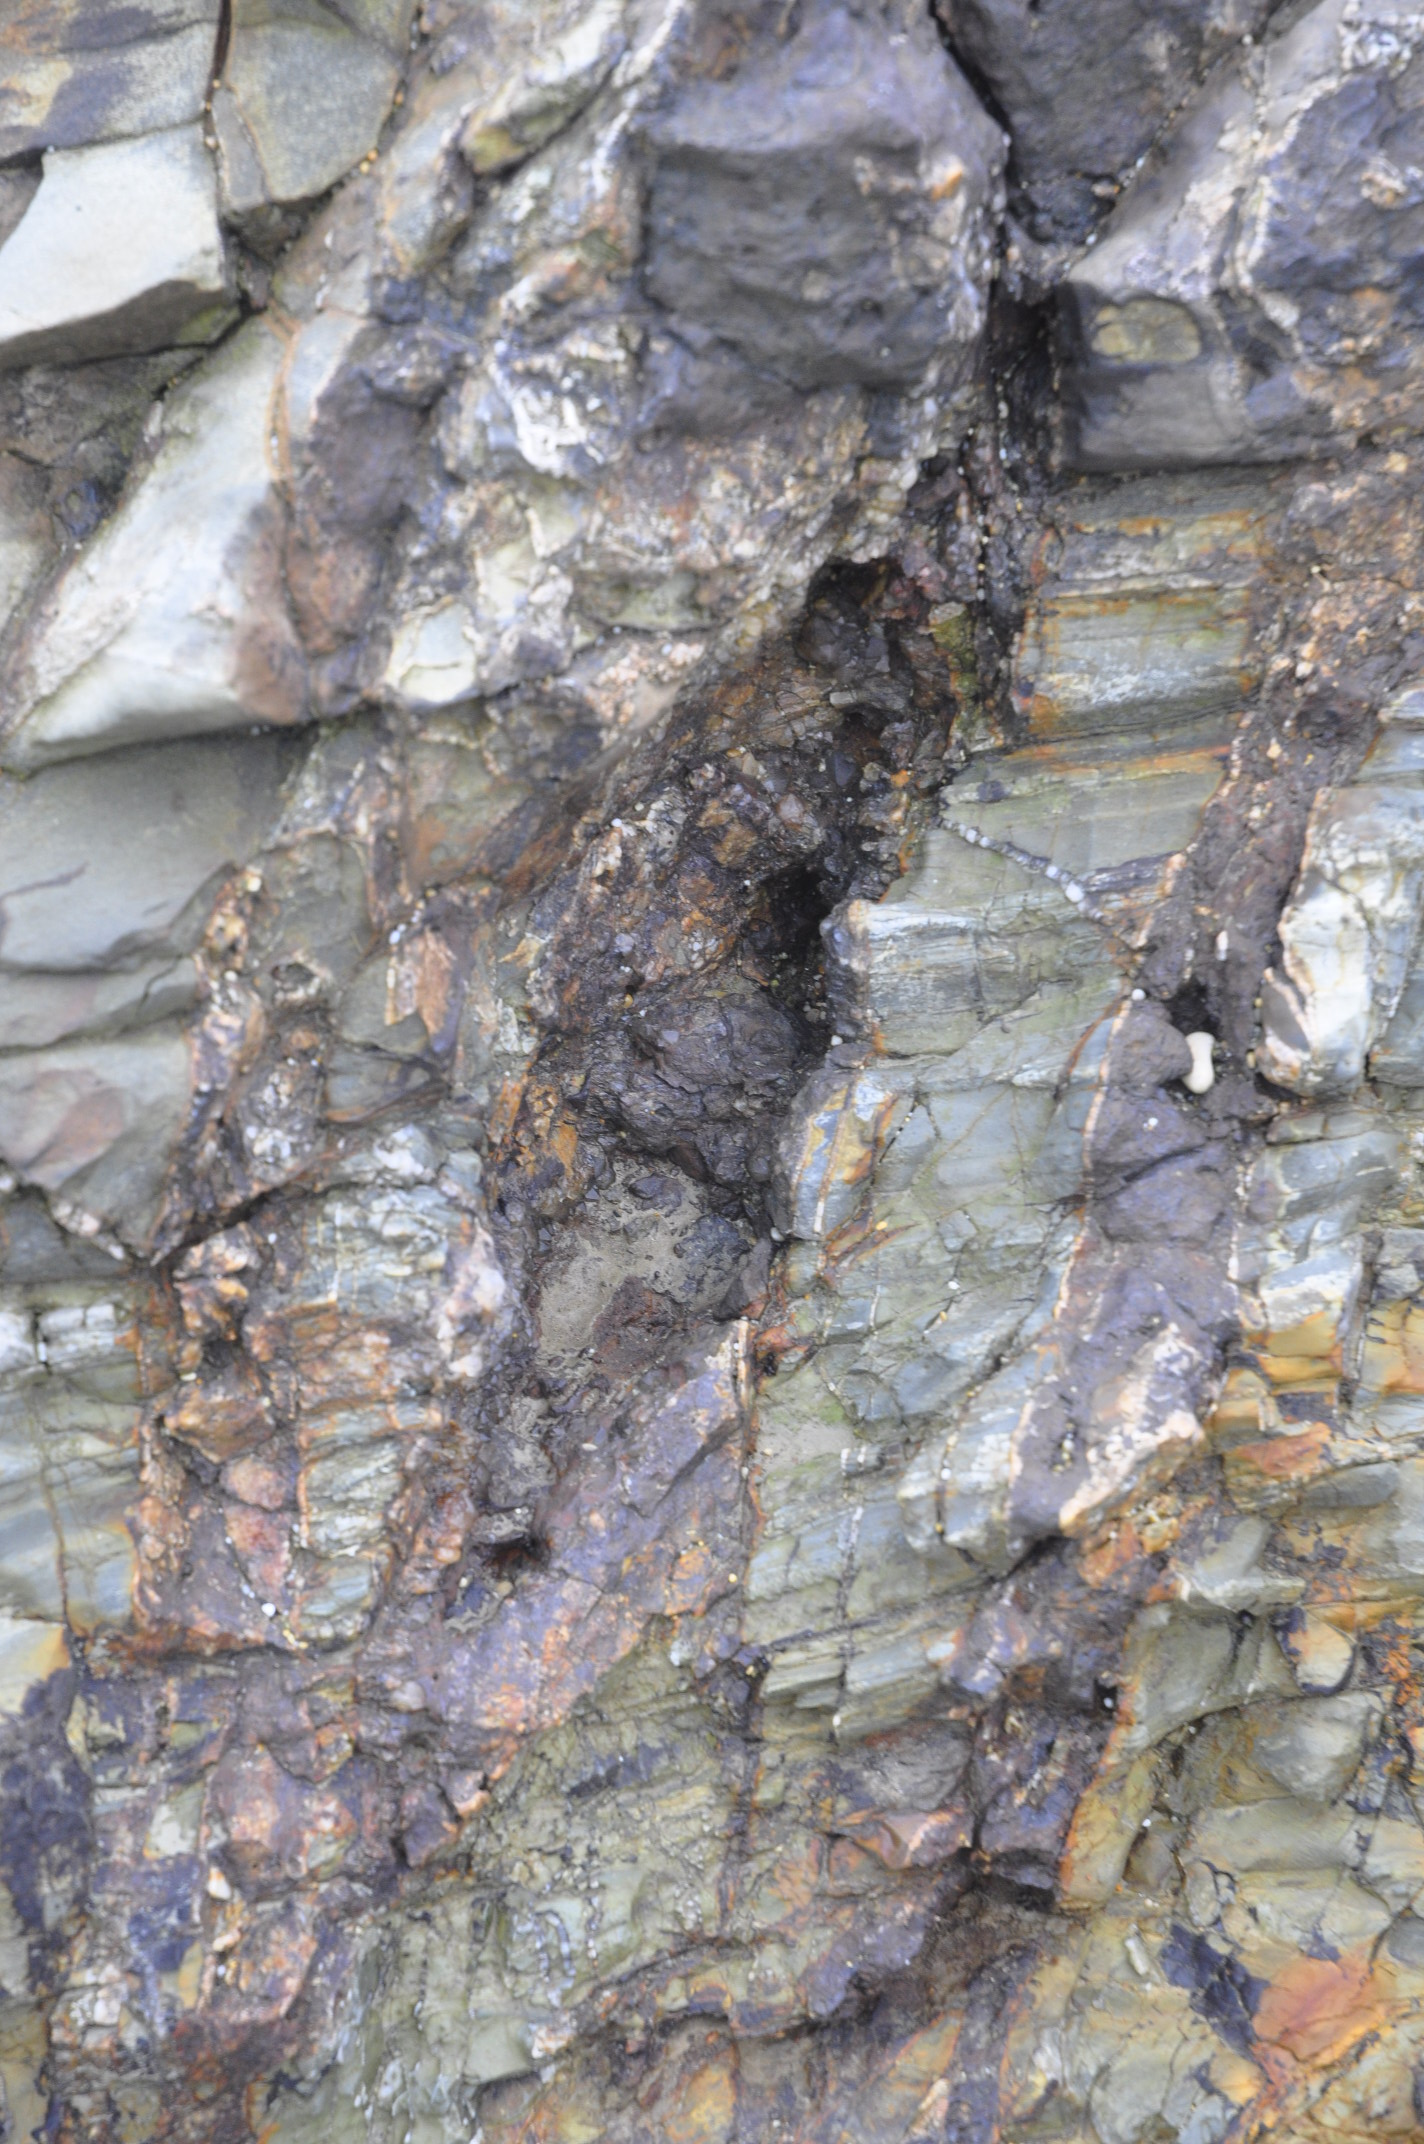 Close-up of the fault zone, with almost black, crushed fault rocks and the fractures around stained brown by minerals precipitated from circulating water.